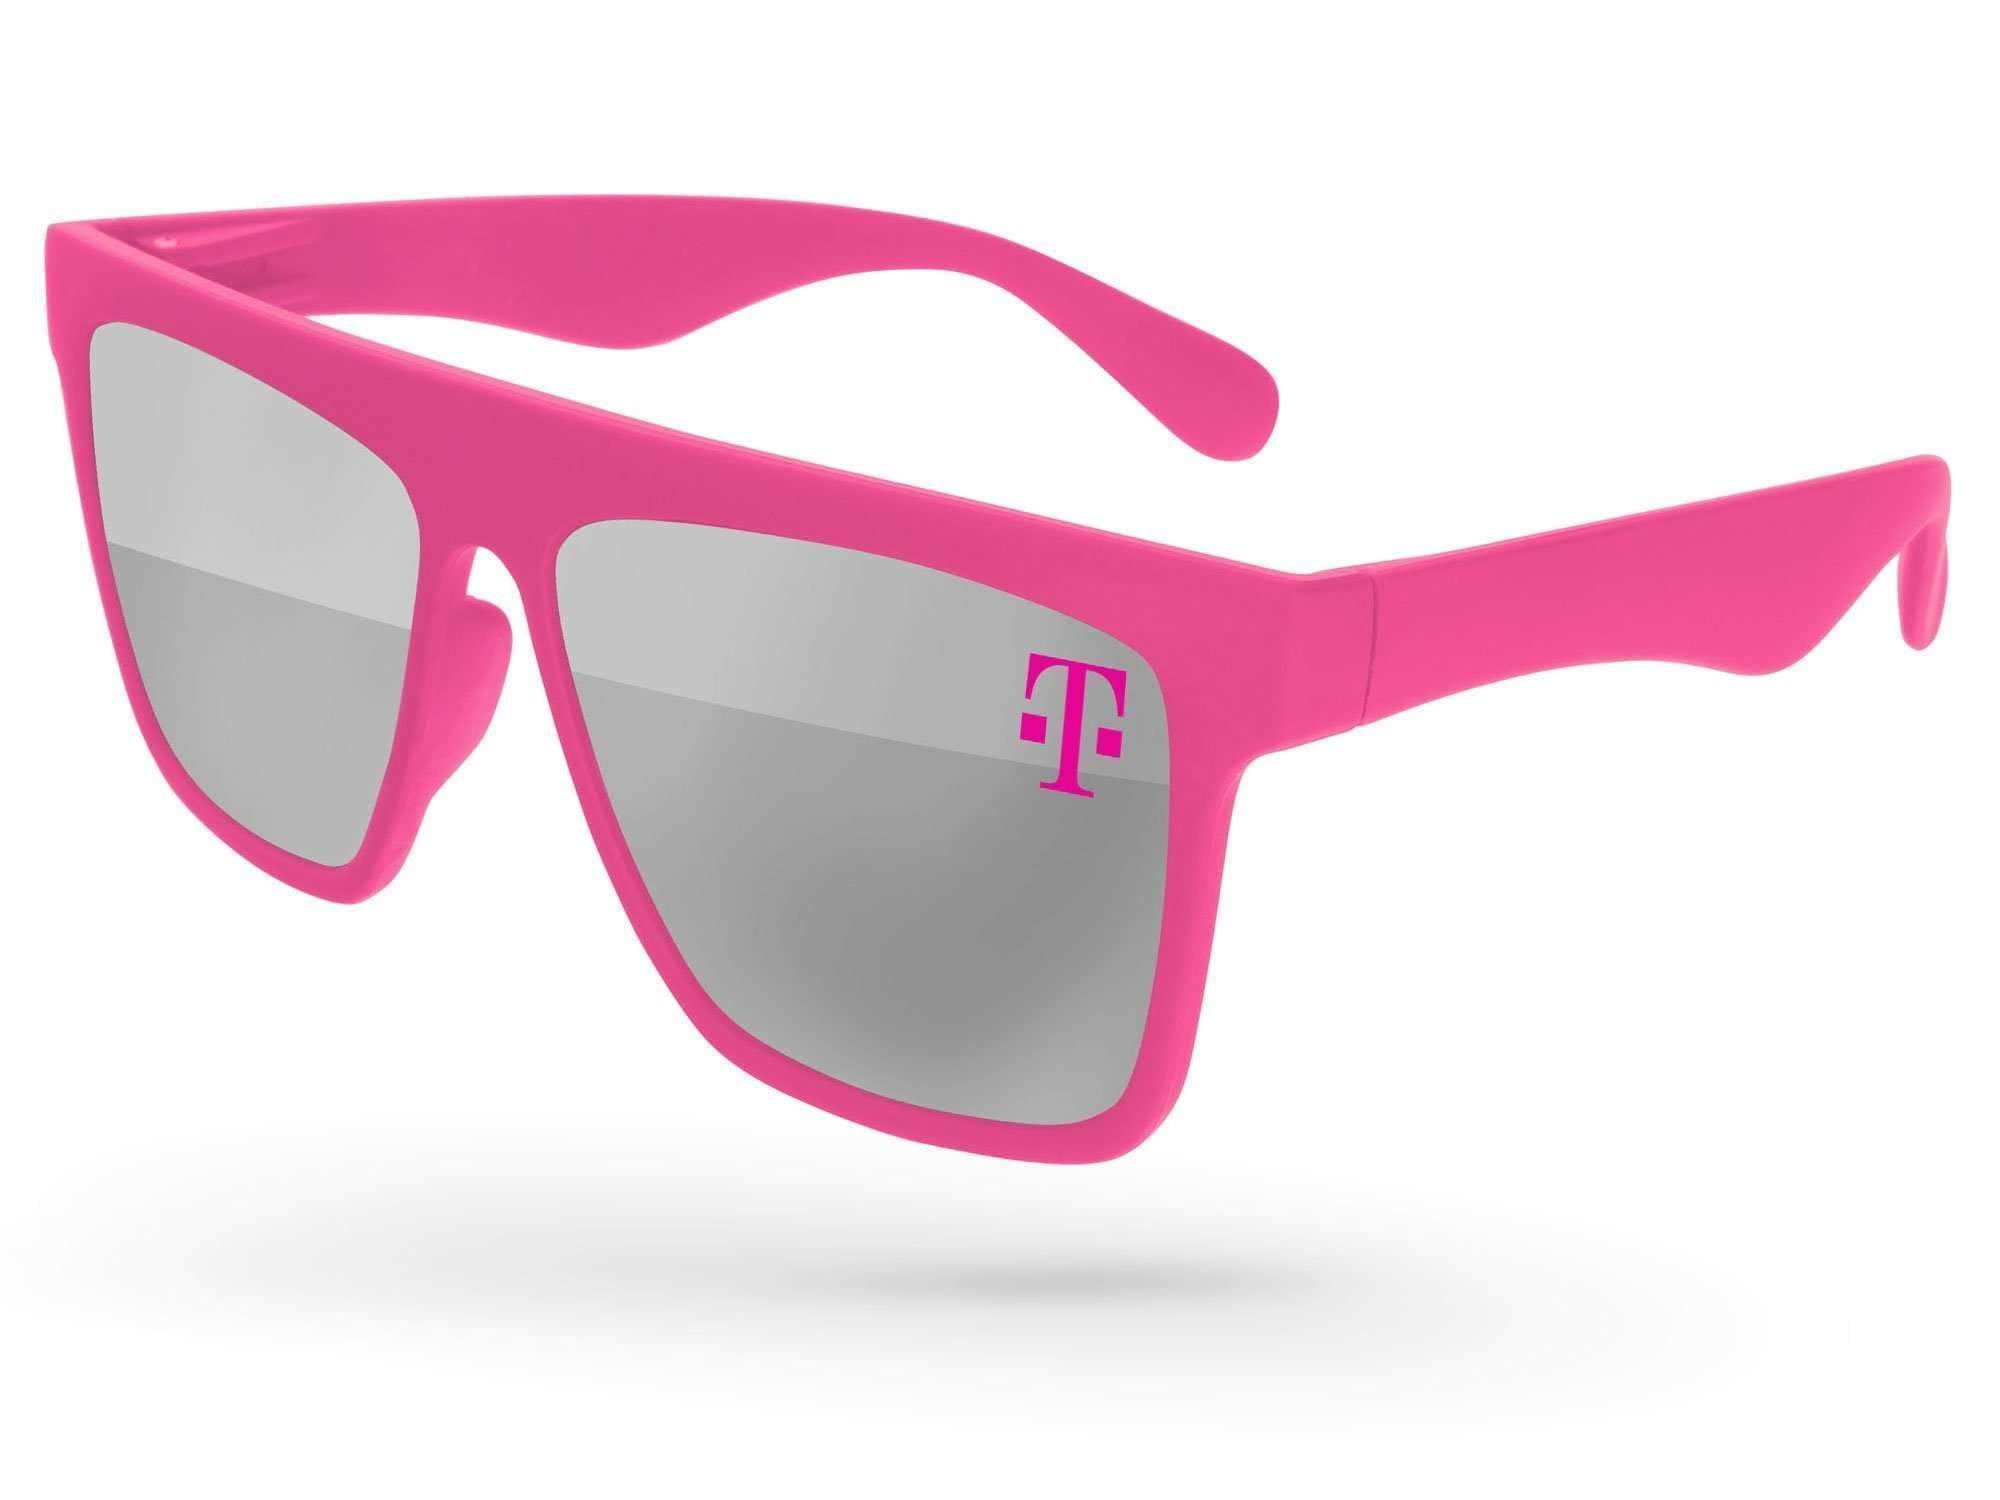 LM500 - Laser Mirror Promotional Sunglasses w/ 1-color lens imprint